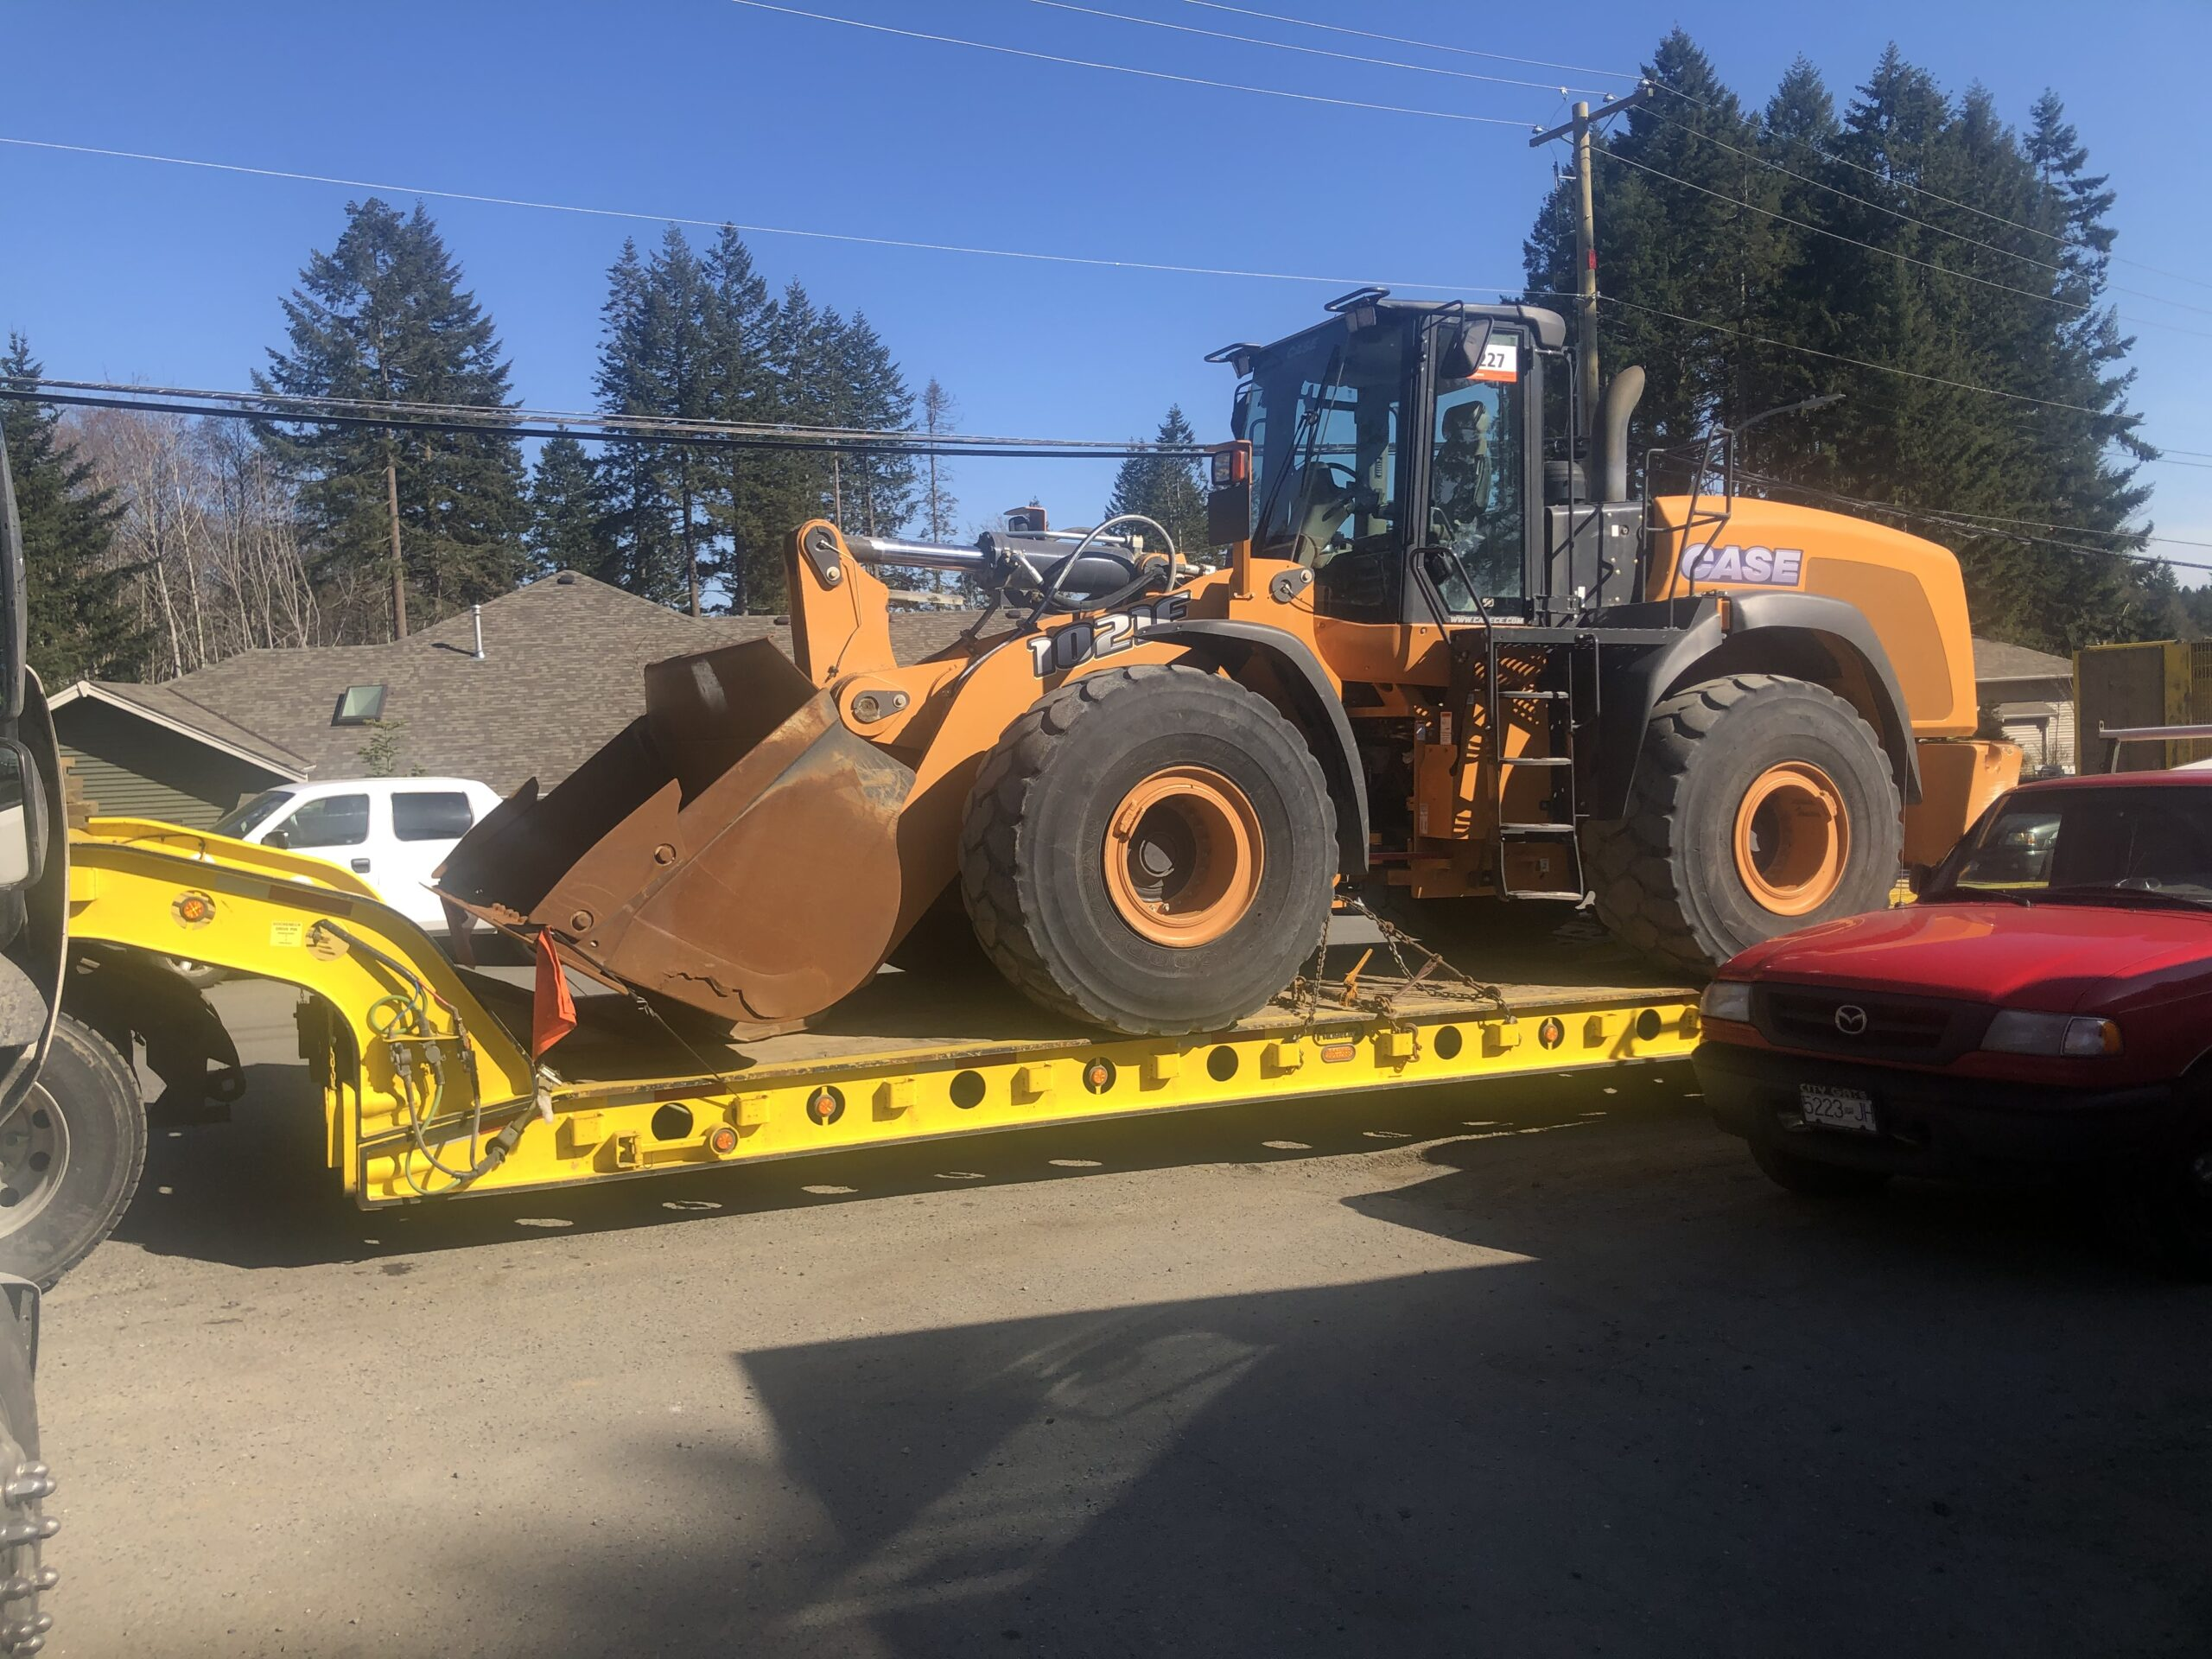 HB Towing a Wheel Loader